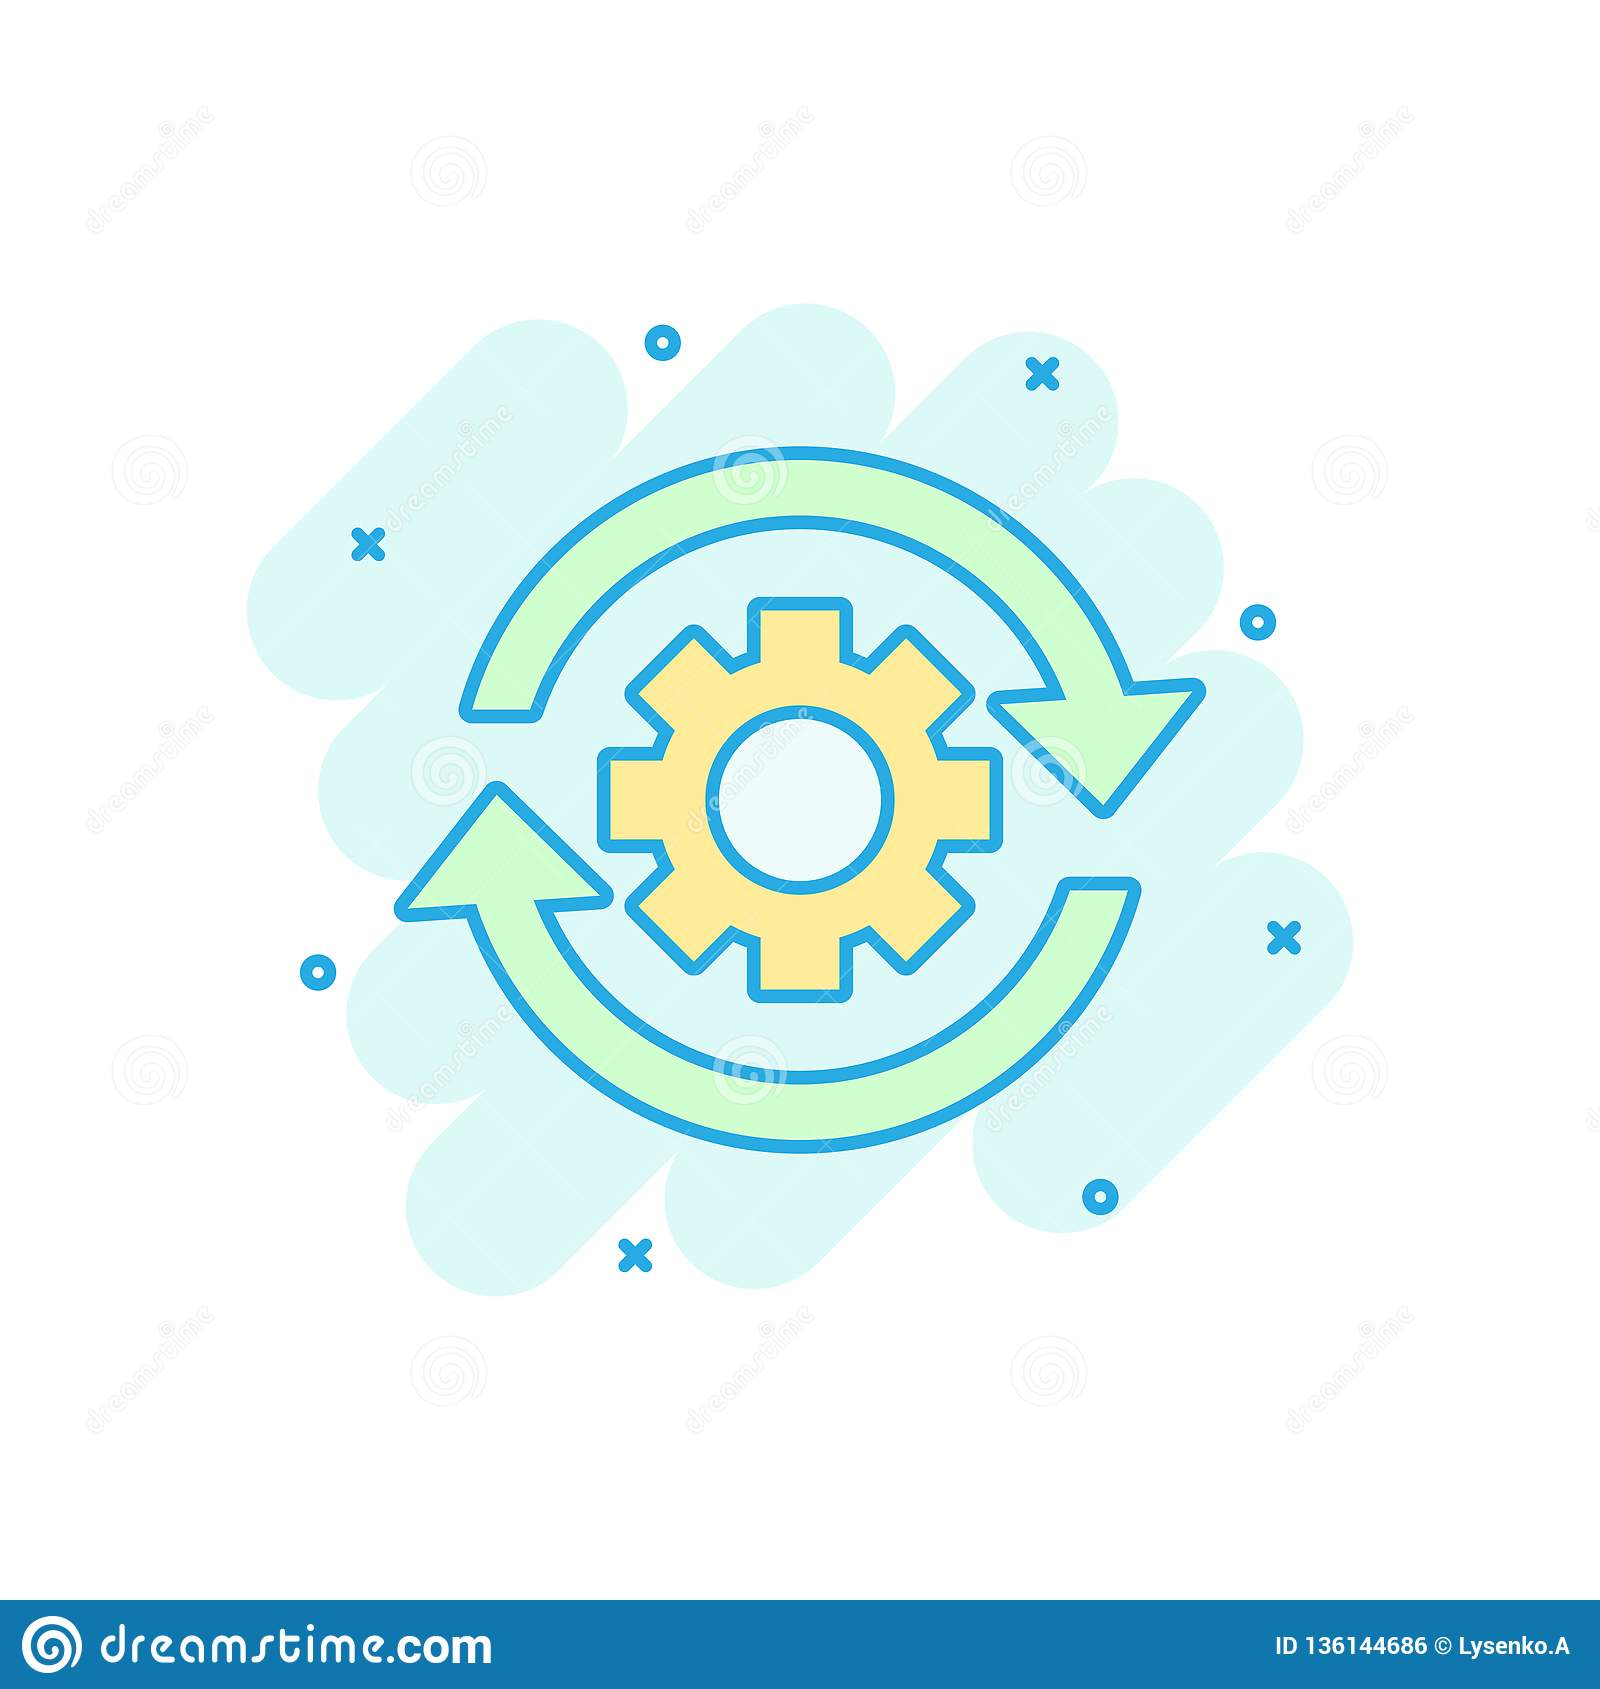 Workflow process icon in comic style. Gear cog wheel with arrows vector cartoon illustration pictogram. Workflow business concept